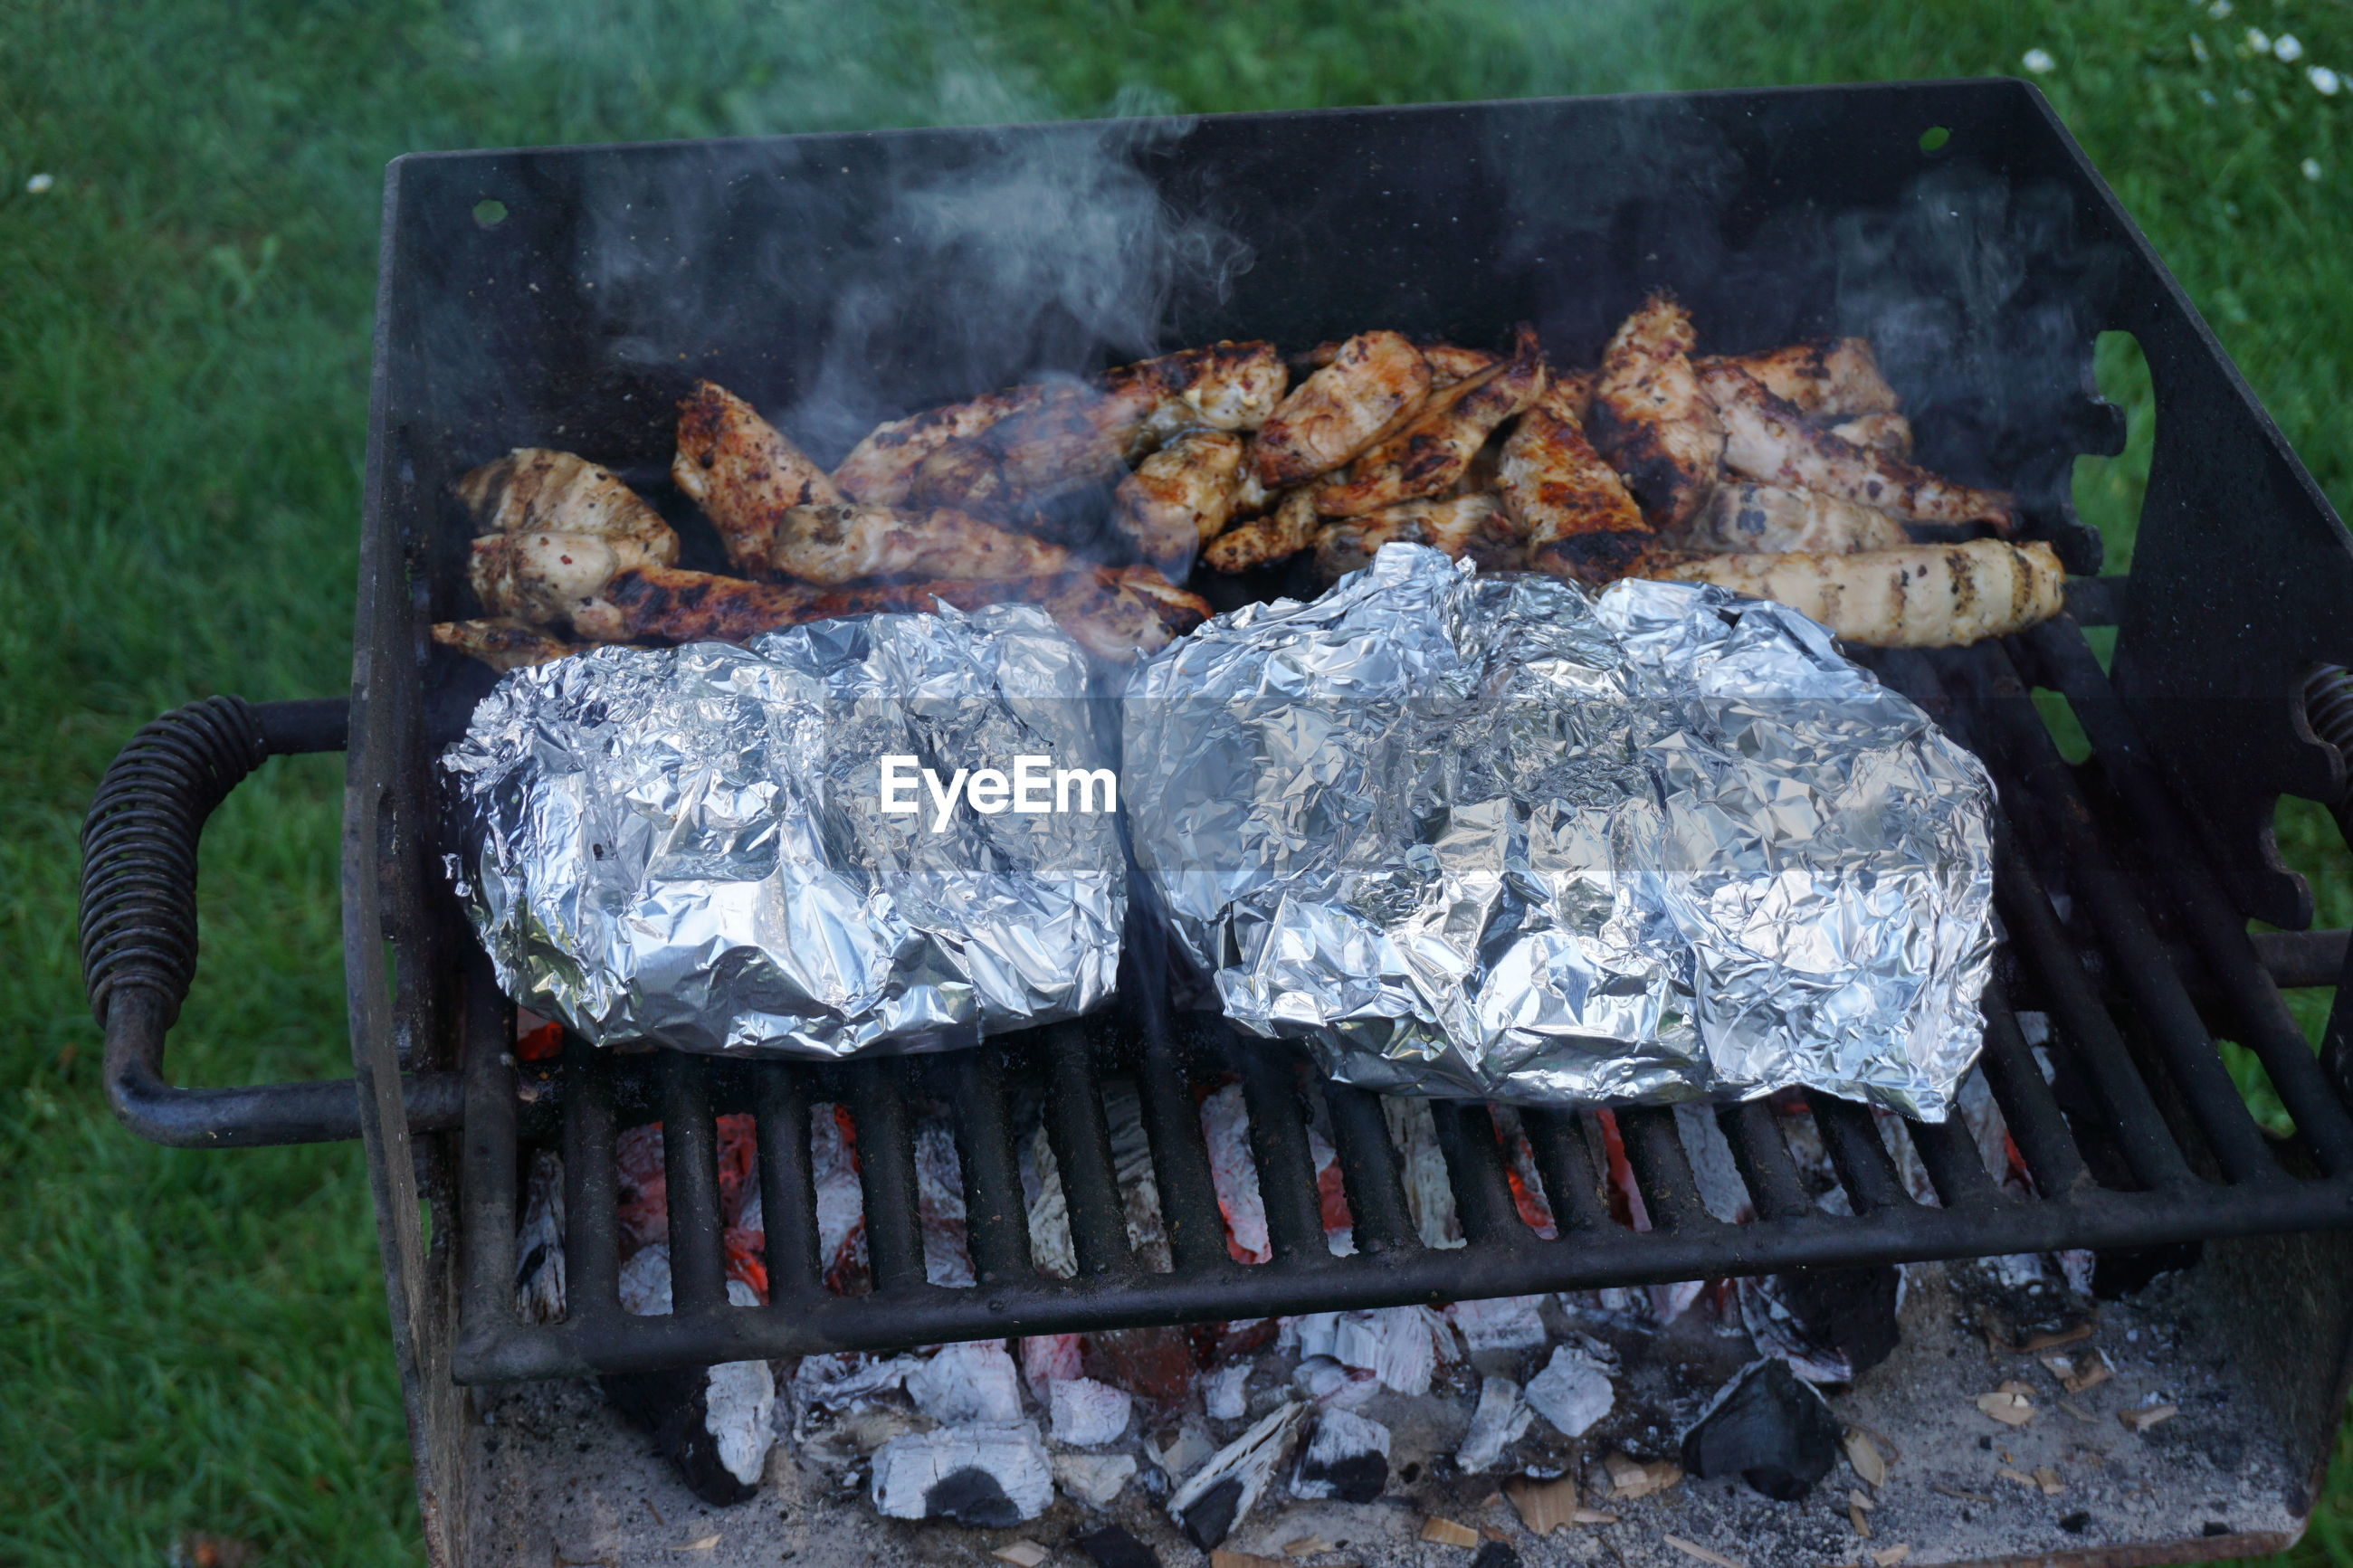 Close-up of barbecuing food